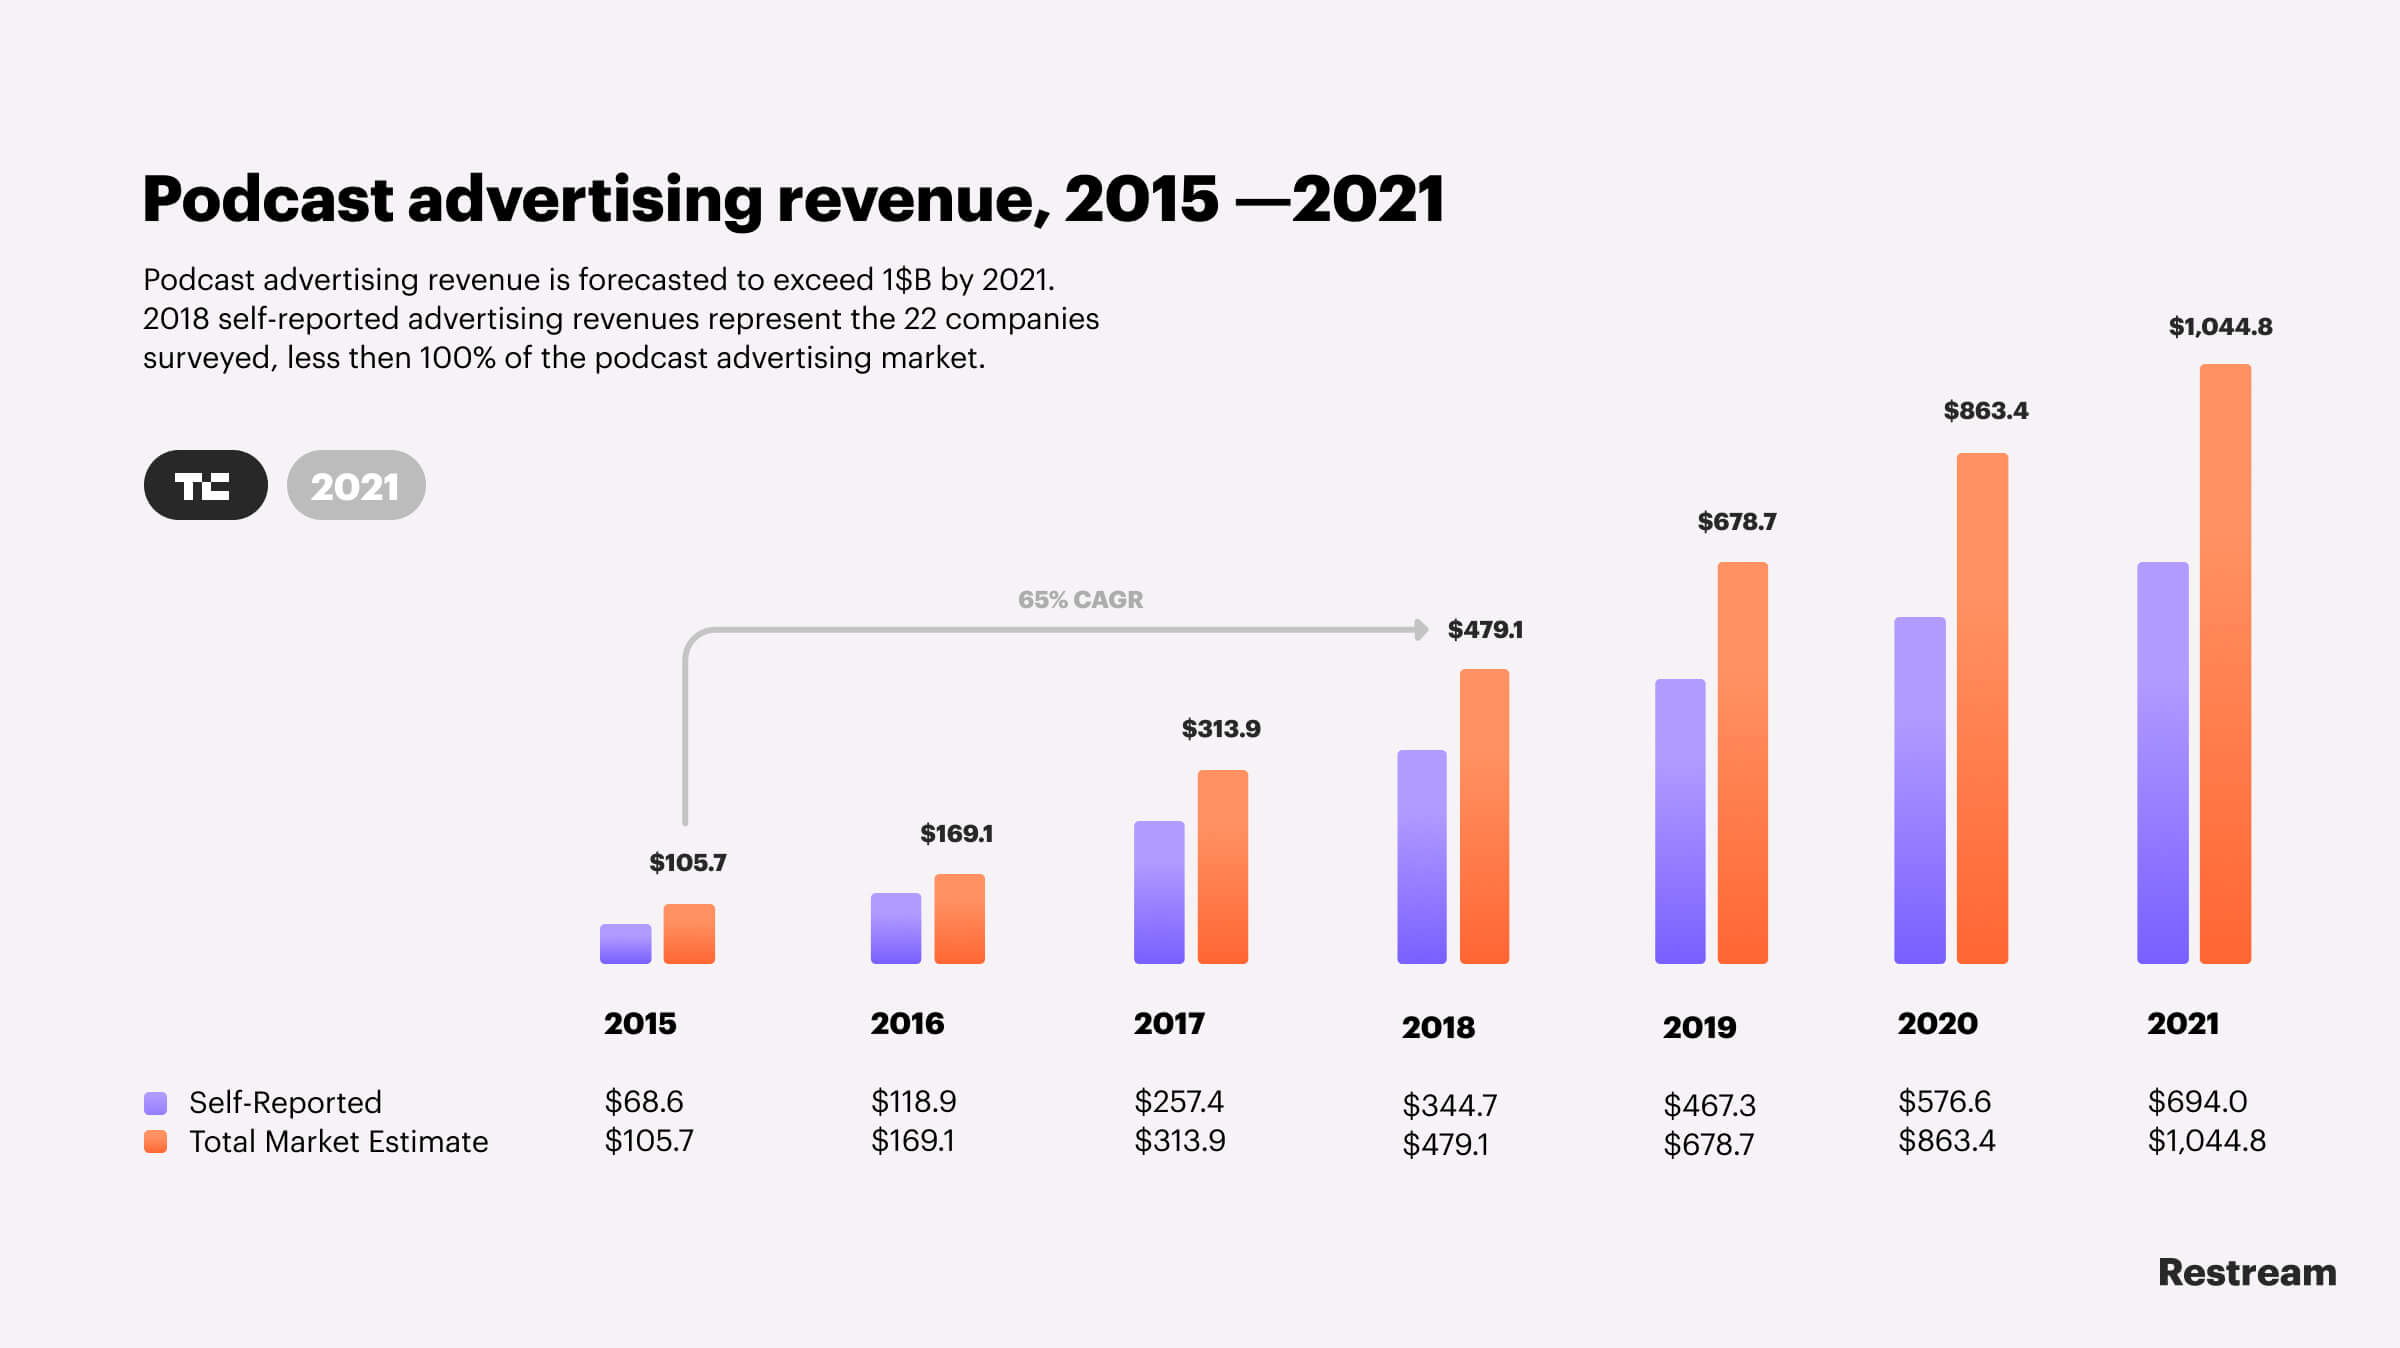 Podcast advertising revenue — TechCrunch research